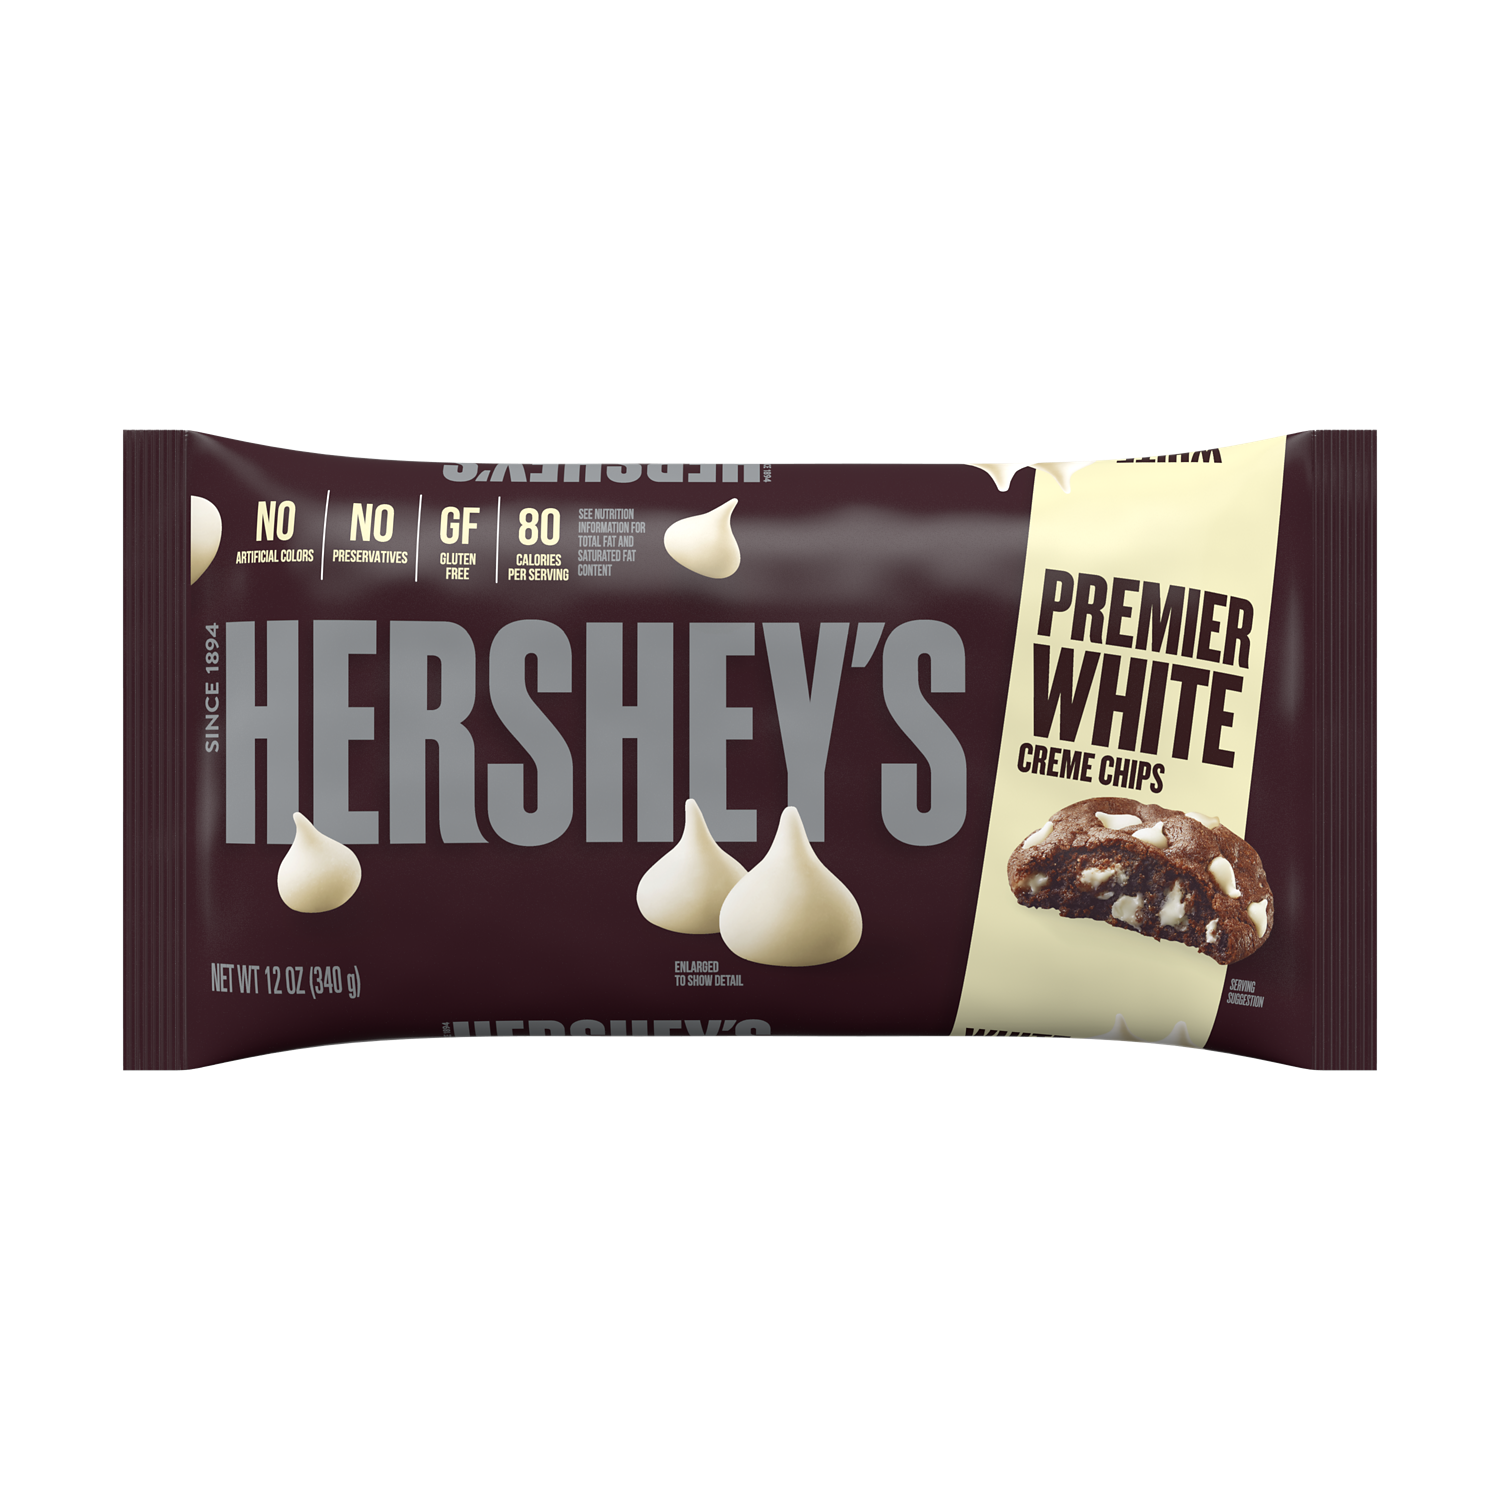 HERSHEY'S Premier White Creme Chips, 12 oz bag - Front of Package